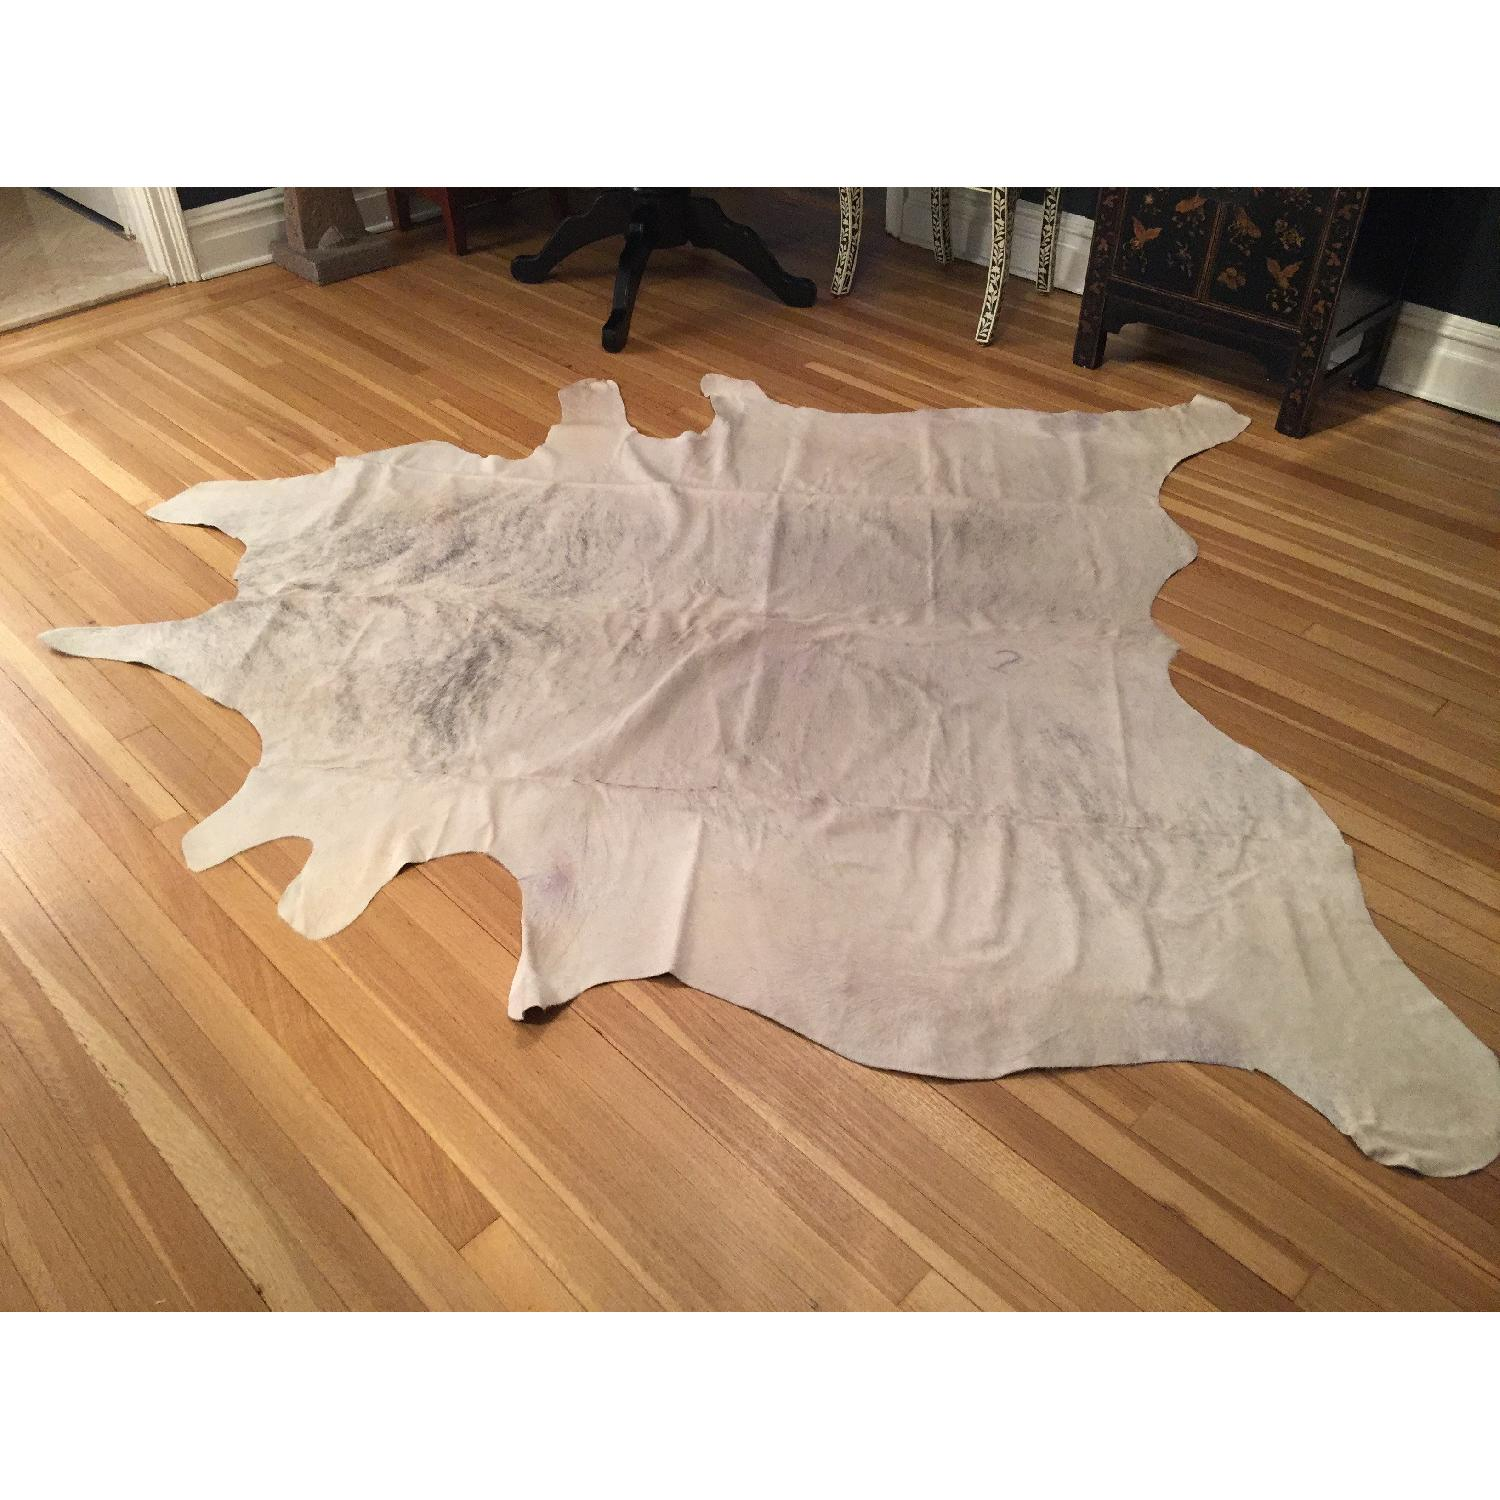 Animal Hide Rug from Argentina in White, Cream & Gray - image-4